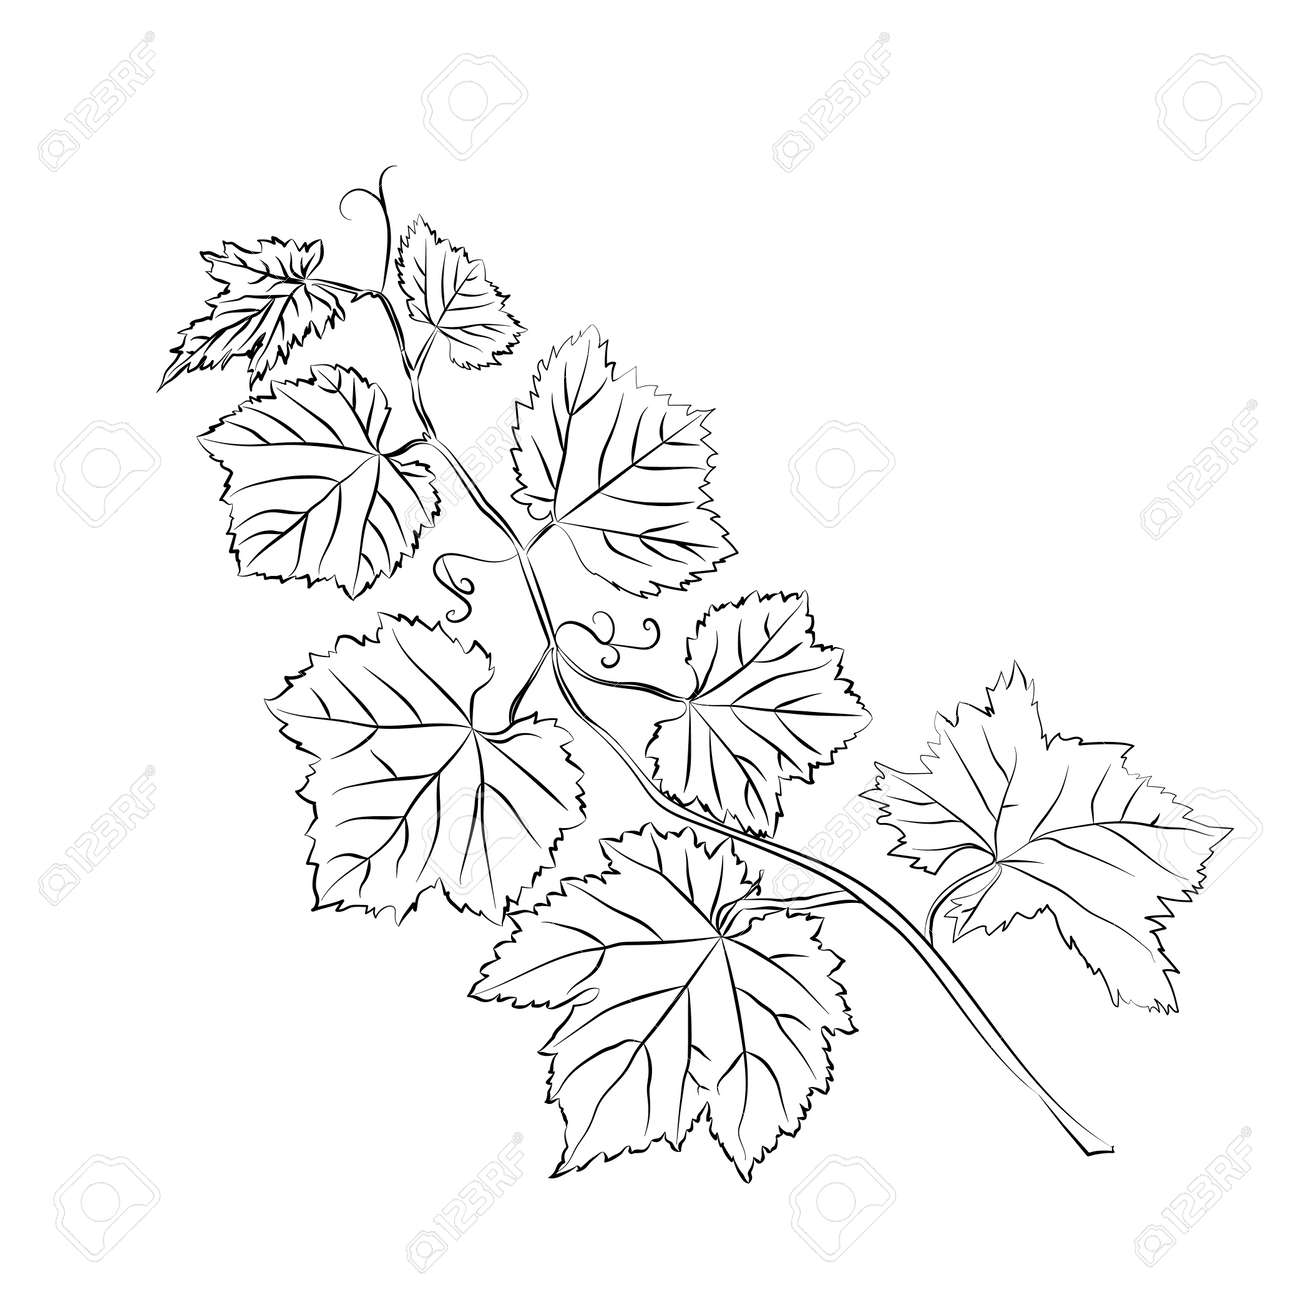 Grape Leaves Baroque Plants Black Outline On White Background Royalty Free Cliparts Vectors And Stock Illustration Image 42084228